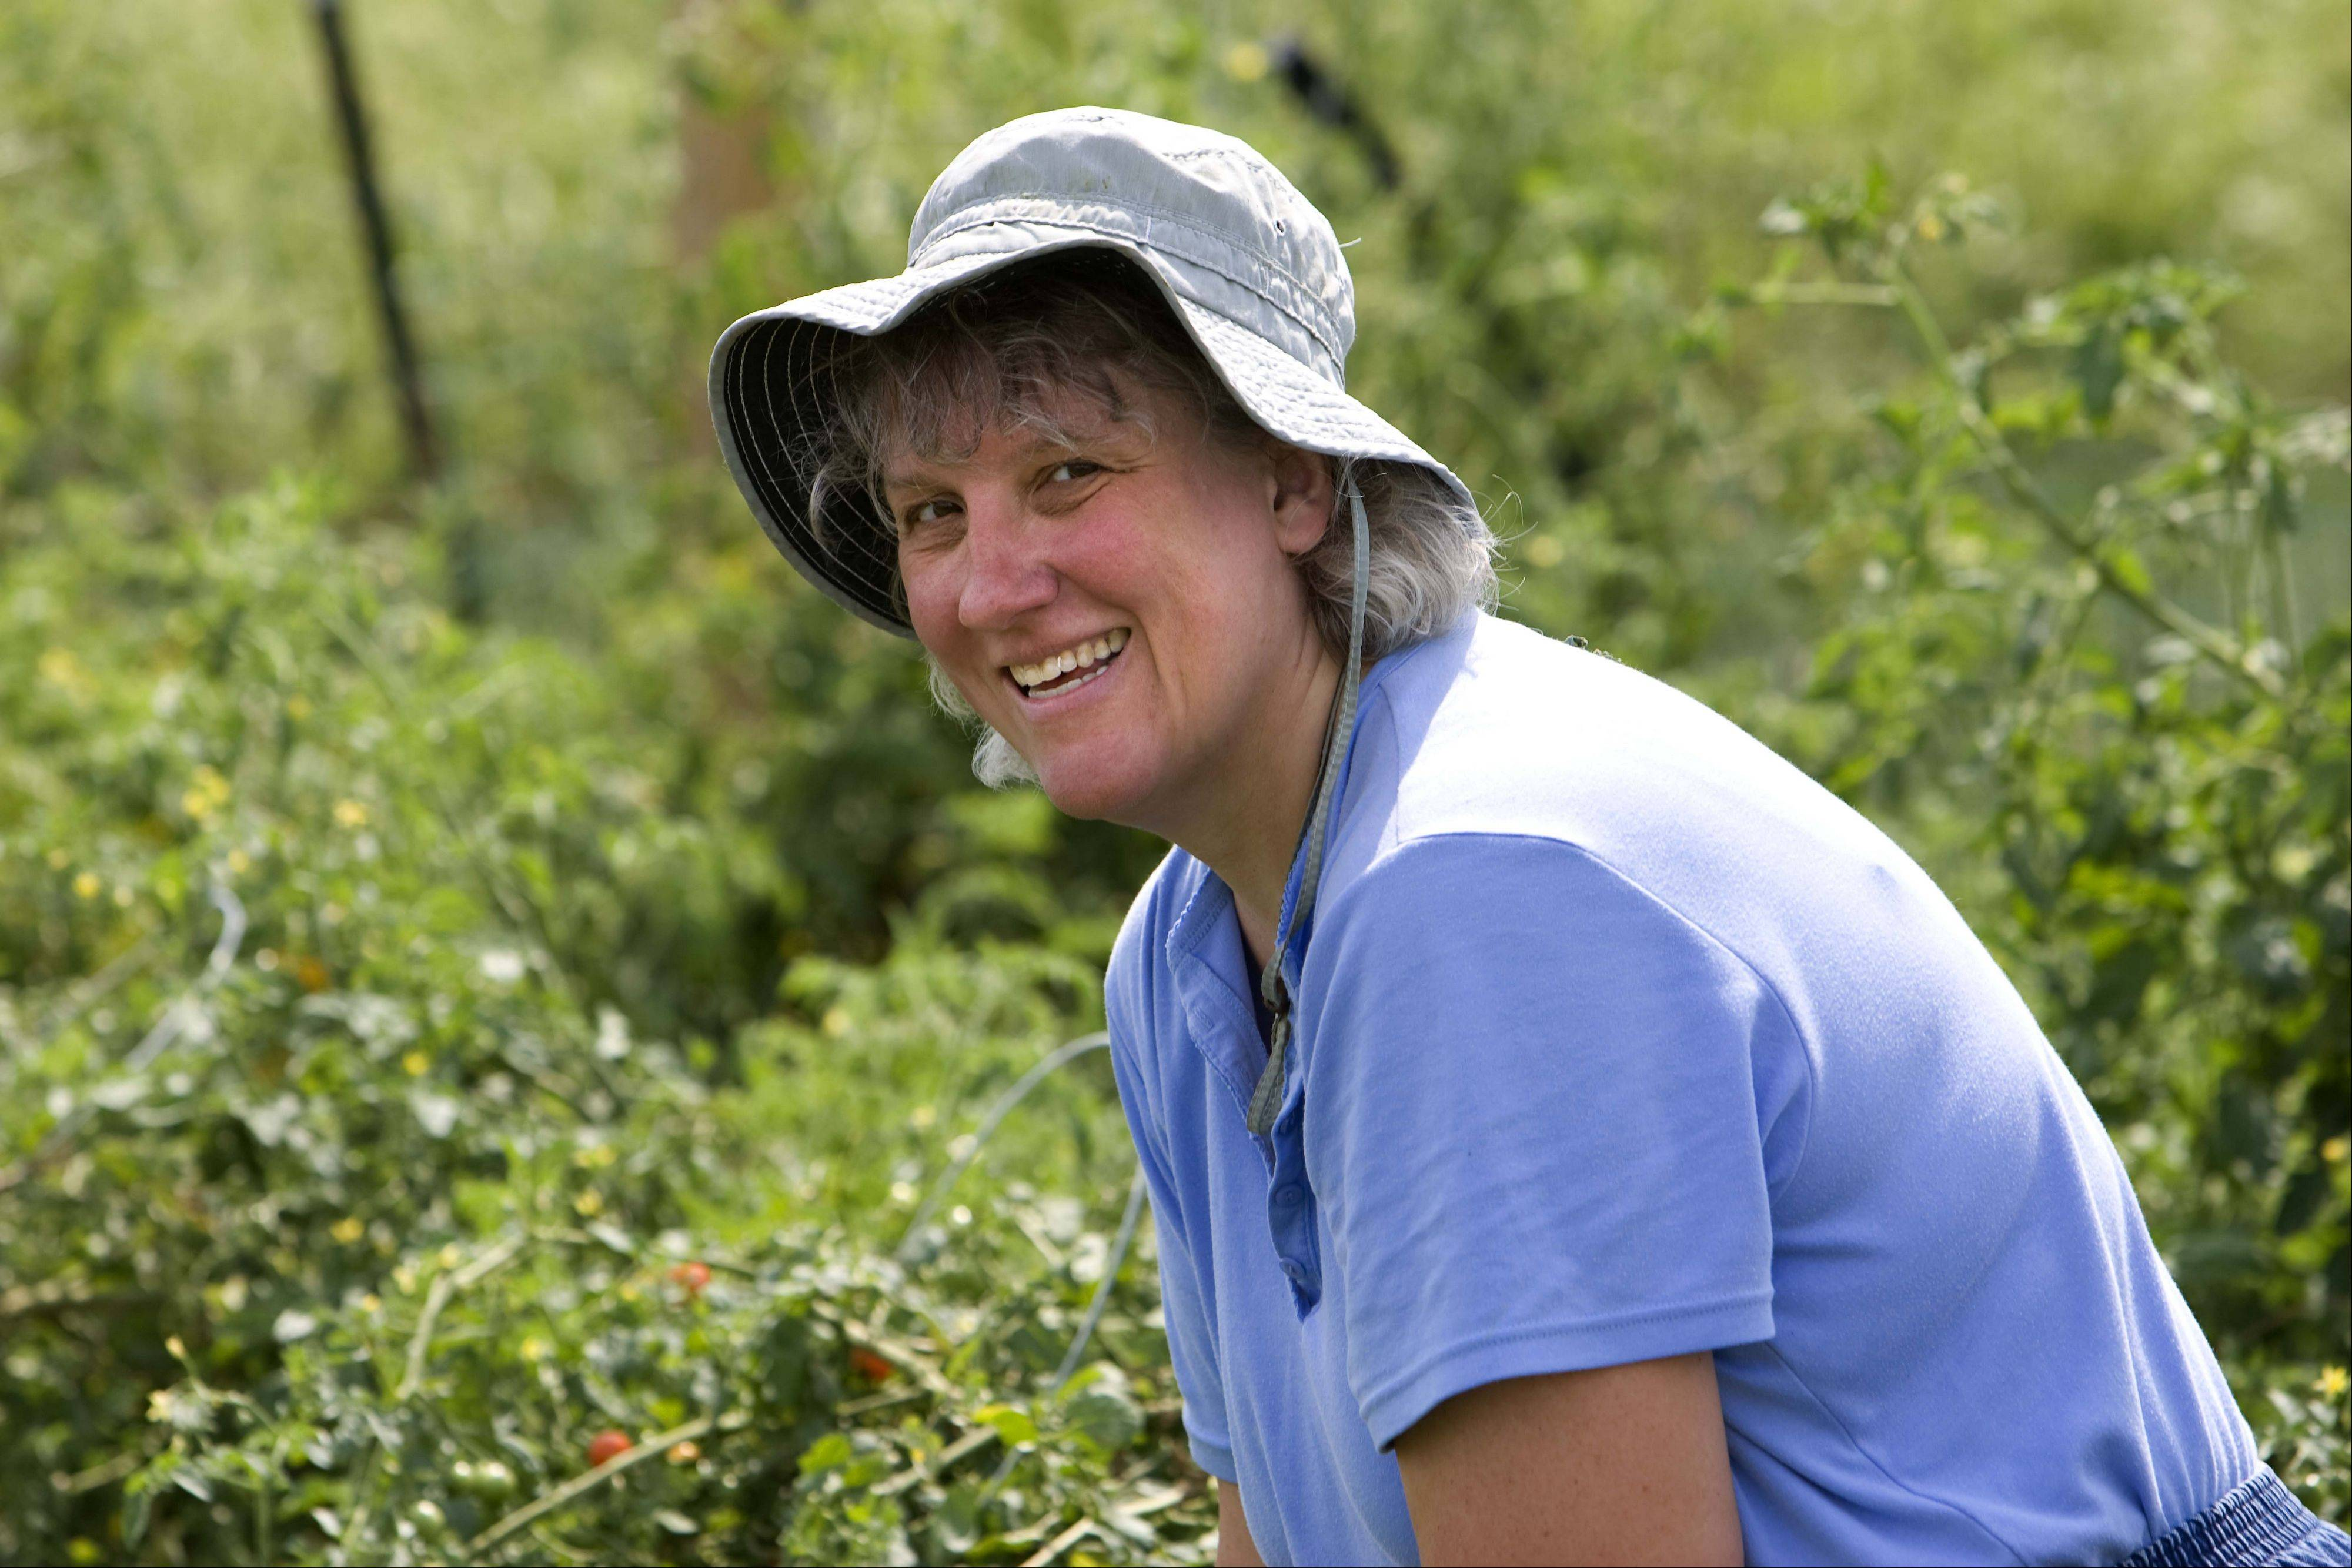 Daily Herald staff writer Susan Sarkauskas has logged many hours this summer in her plot at the Community Garden in Geneva.